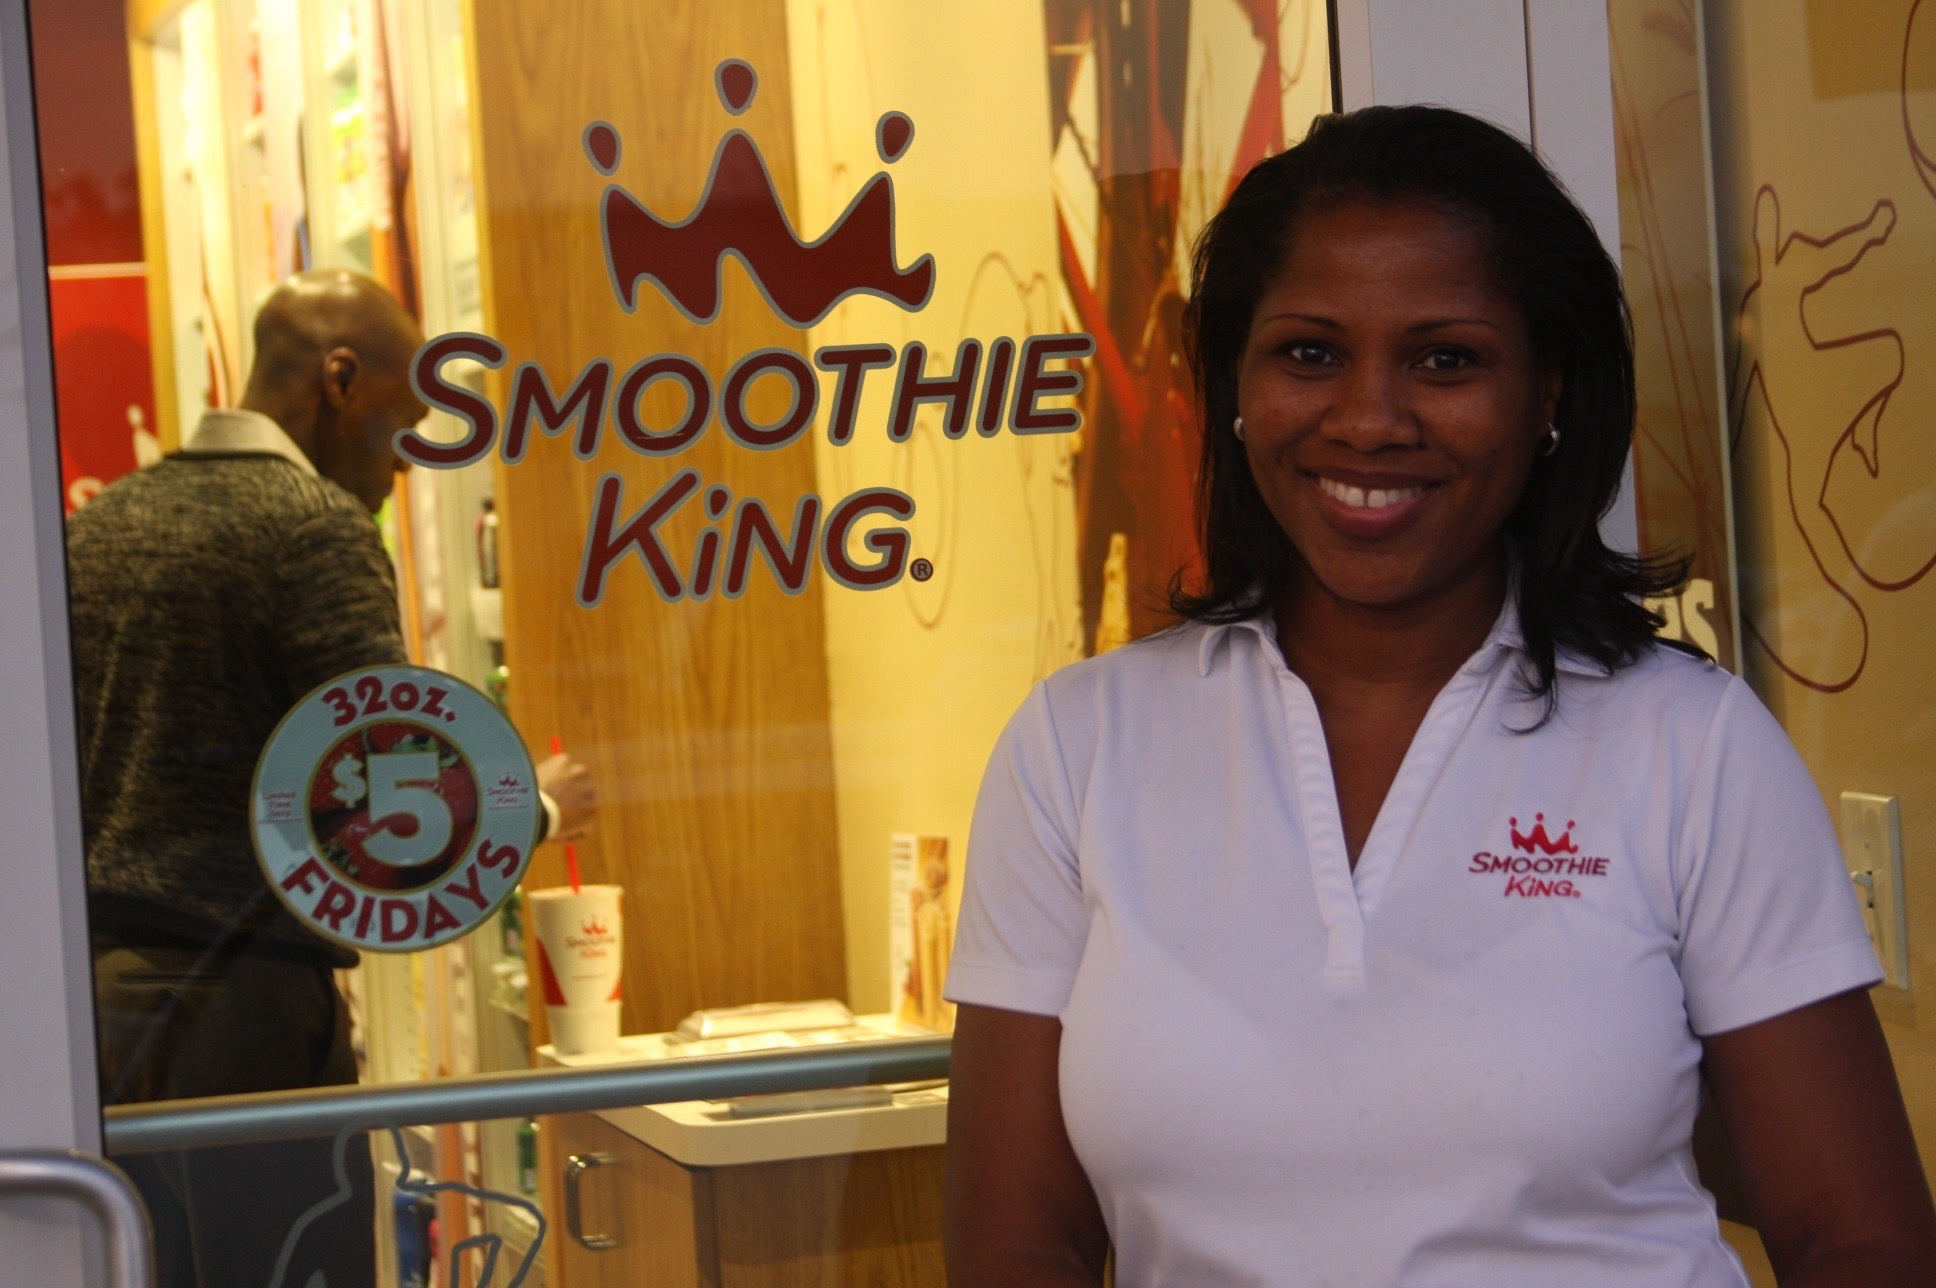 ESSENCE Network: Faith And Family Helped Tonya Brigham Become A Queen In The 'Smoothie King' Empire